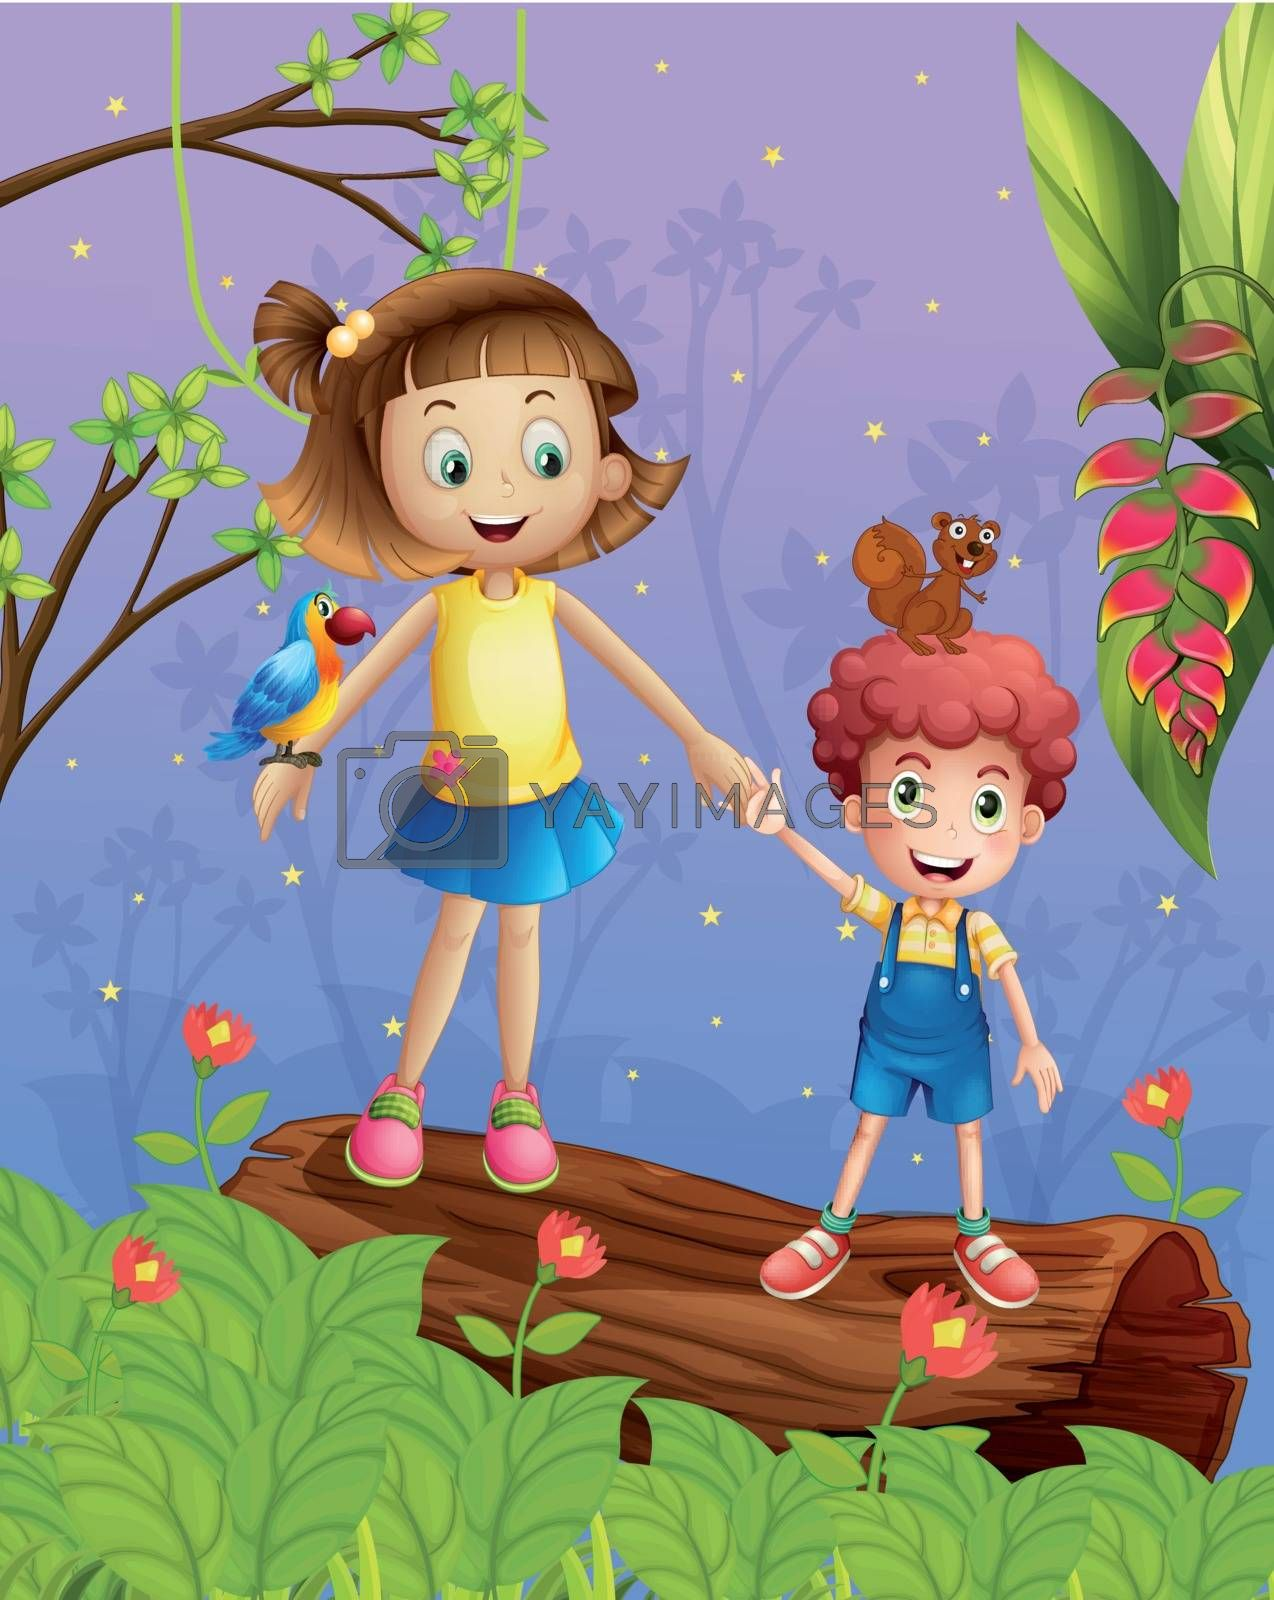 Illustration of a girl and a boy in the forest